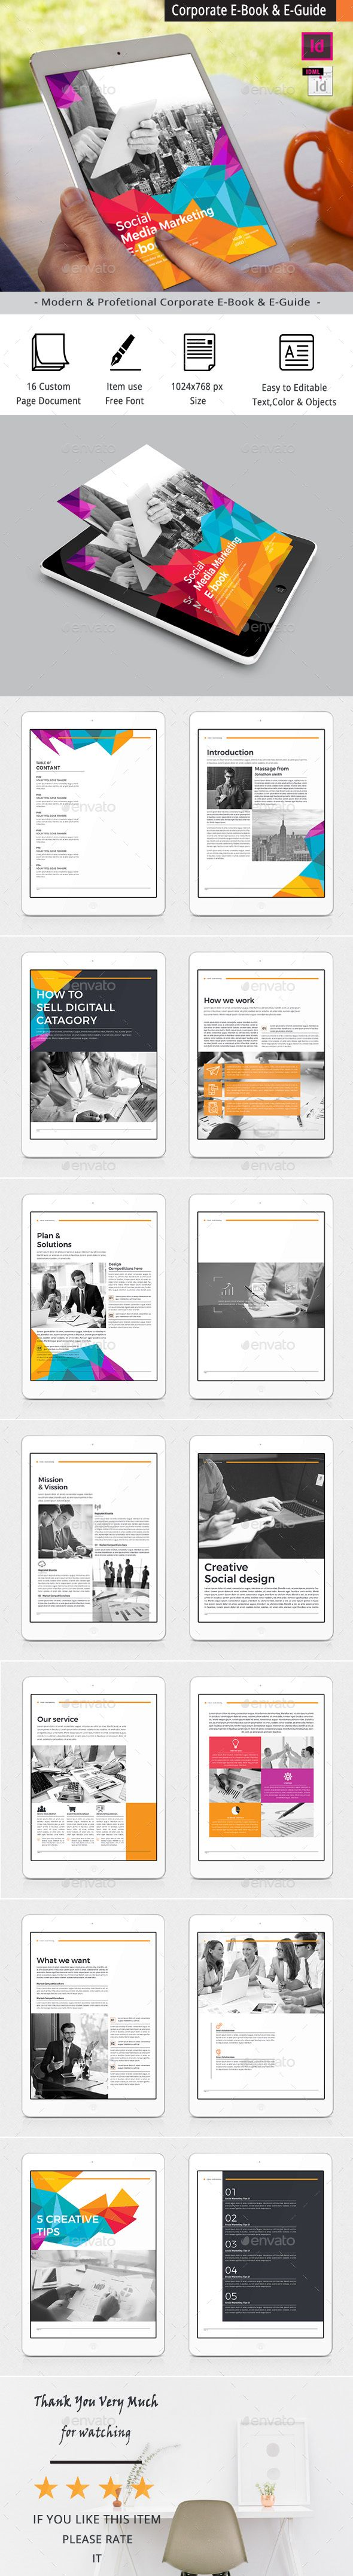 514 best e publishing templates images on pinterest for Workbook template indesign